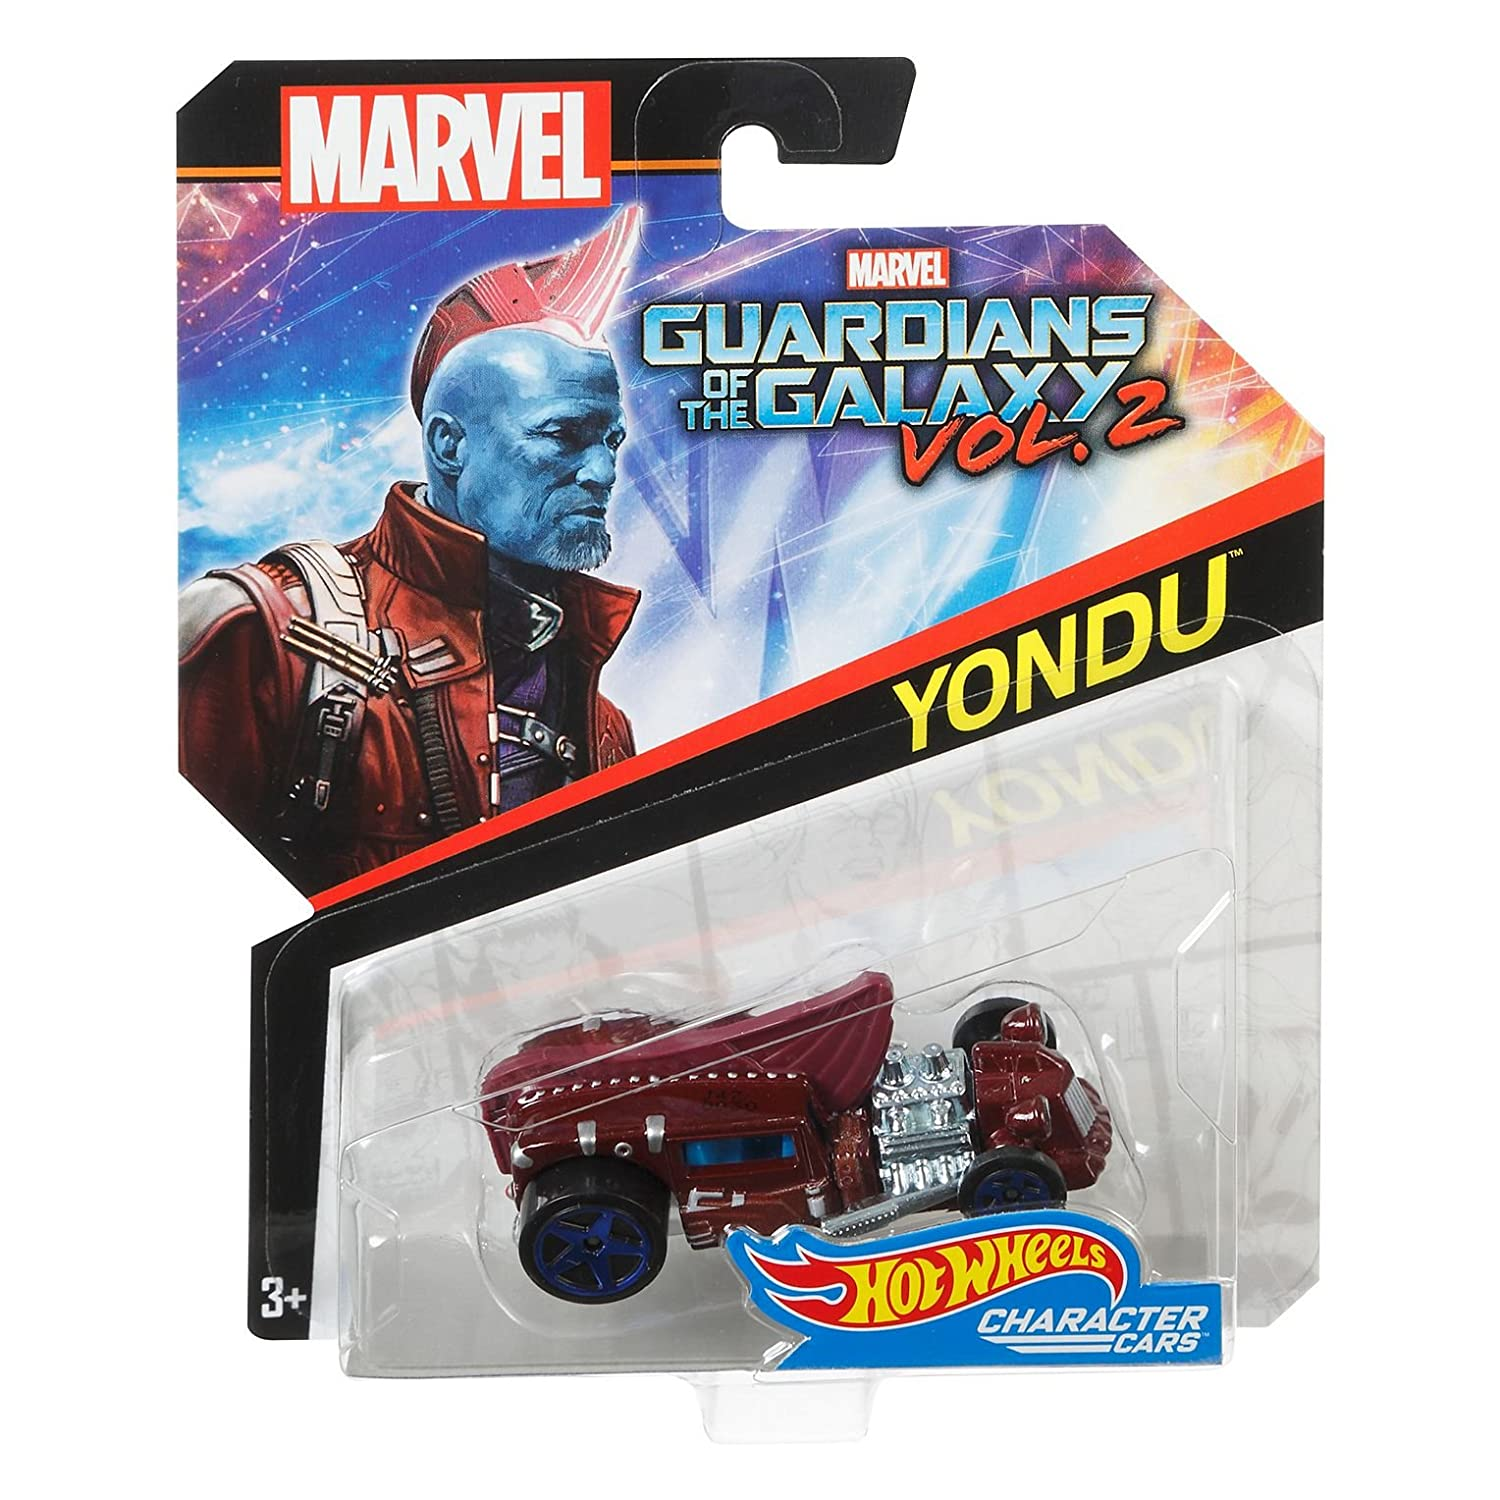 Hot Wheels 1:64 Marvel Character Car Guardians of the Galaxy Yondu